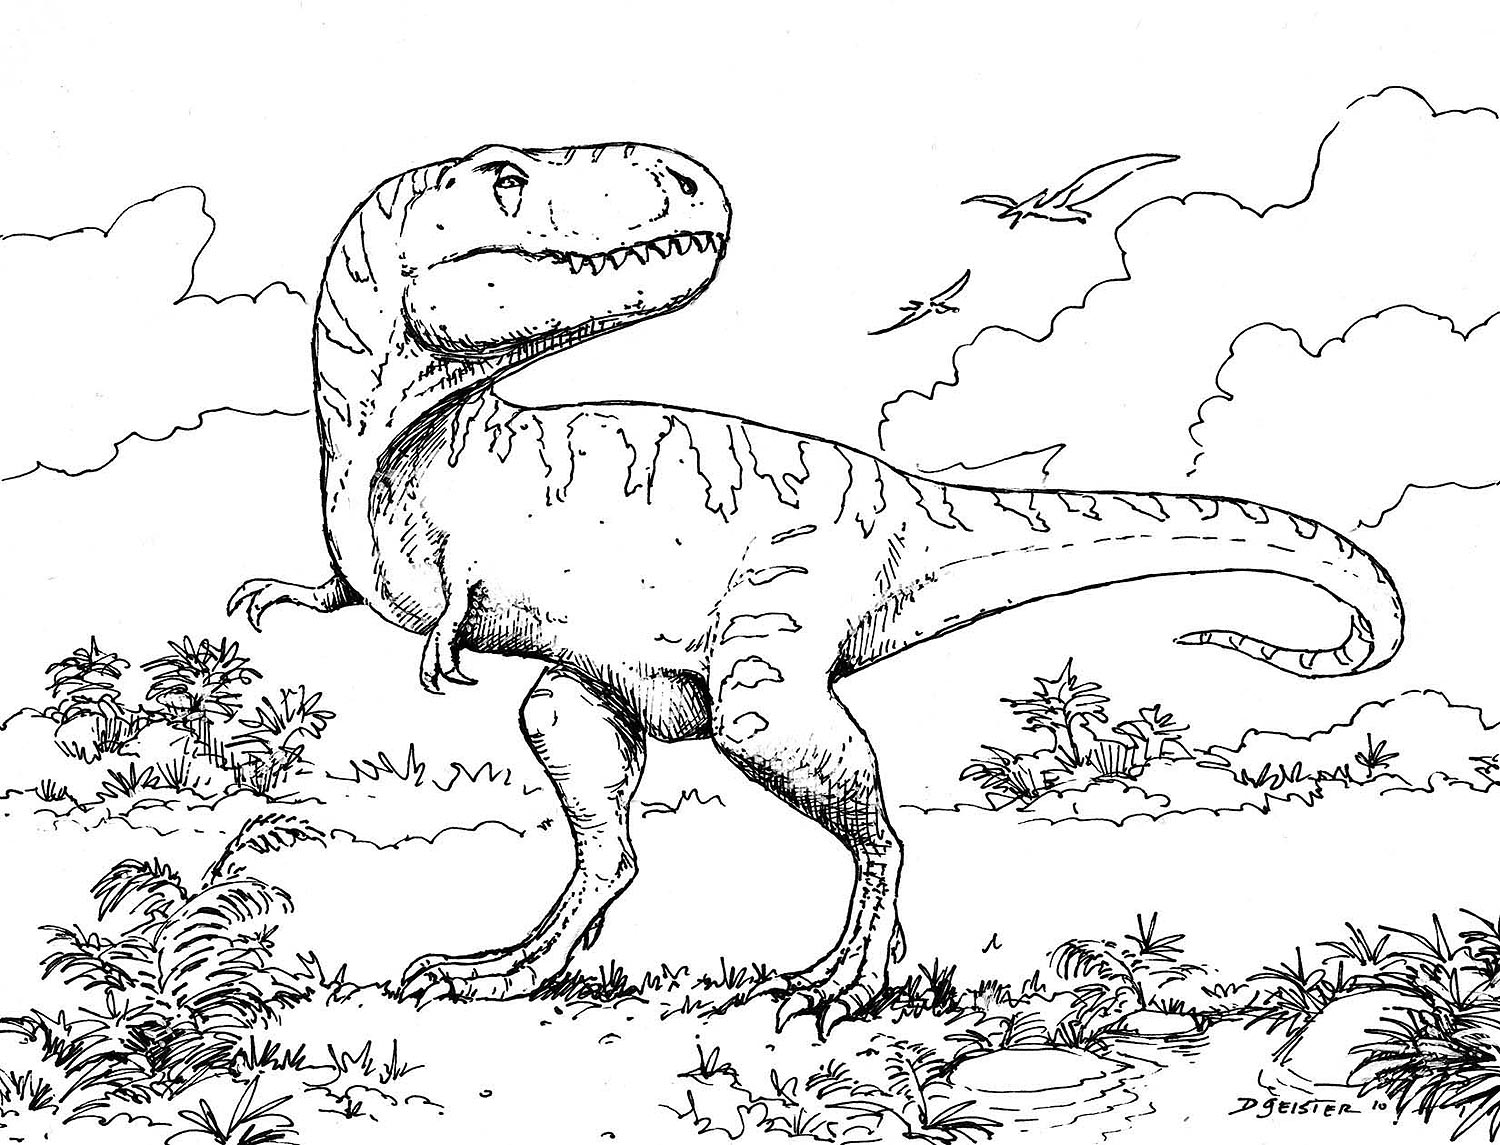 Childrens coloring dinosaur pages - Dinosaur Printable Coloring Pages